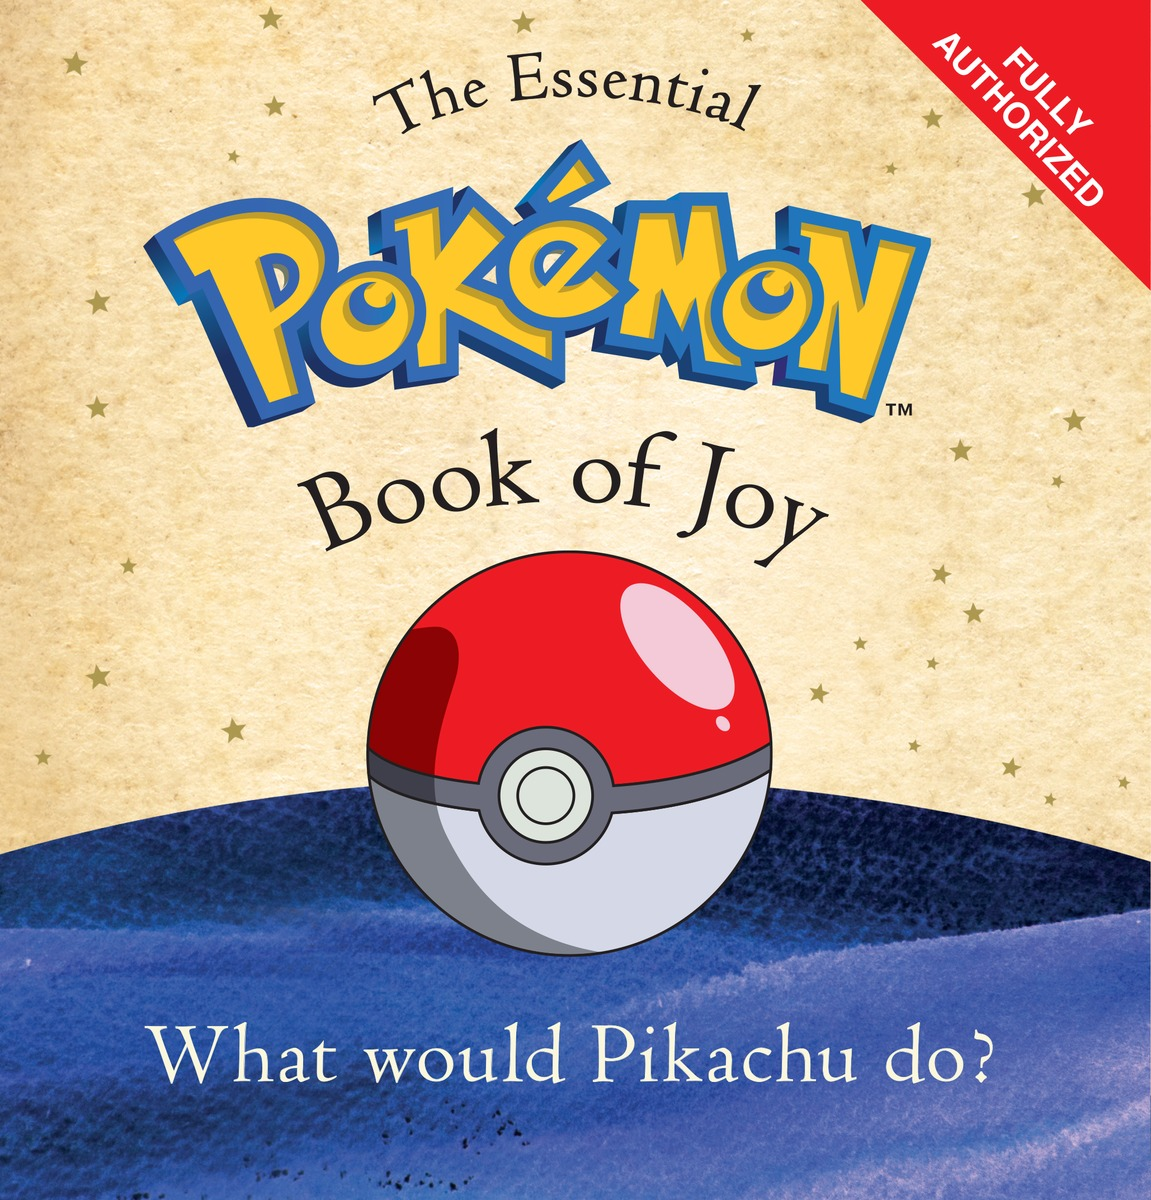 The Essential Pokemon Book of Joy monsters of folk monsters of folk monsters of folk